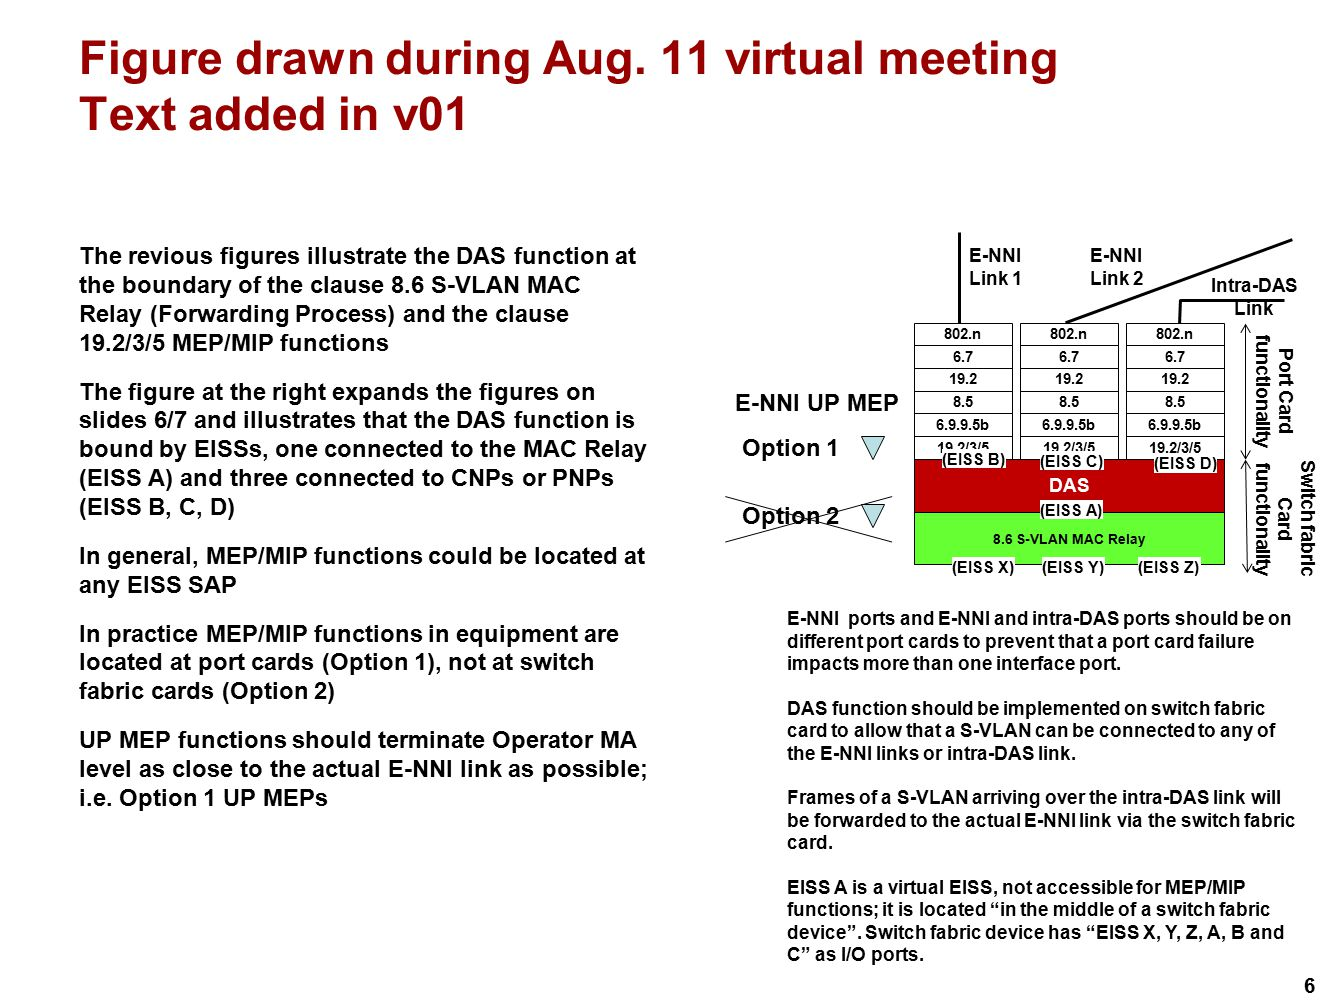 Figure drawn during Aug. 11 virtual meeting Text added in v01